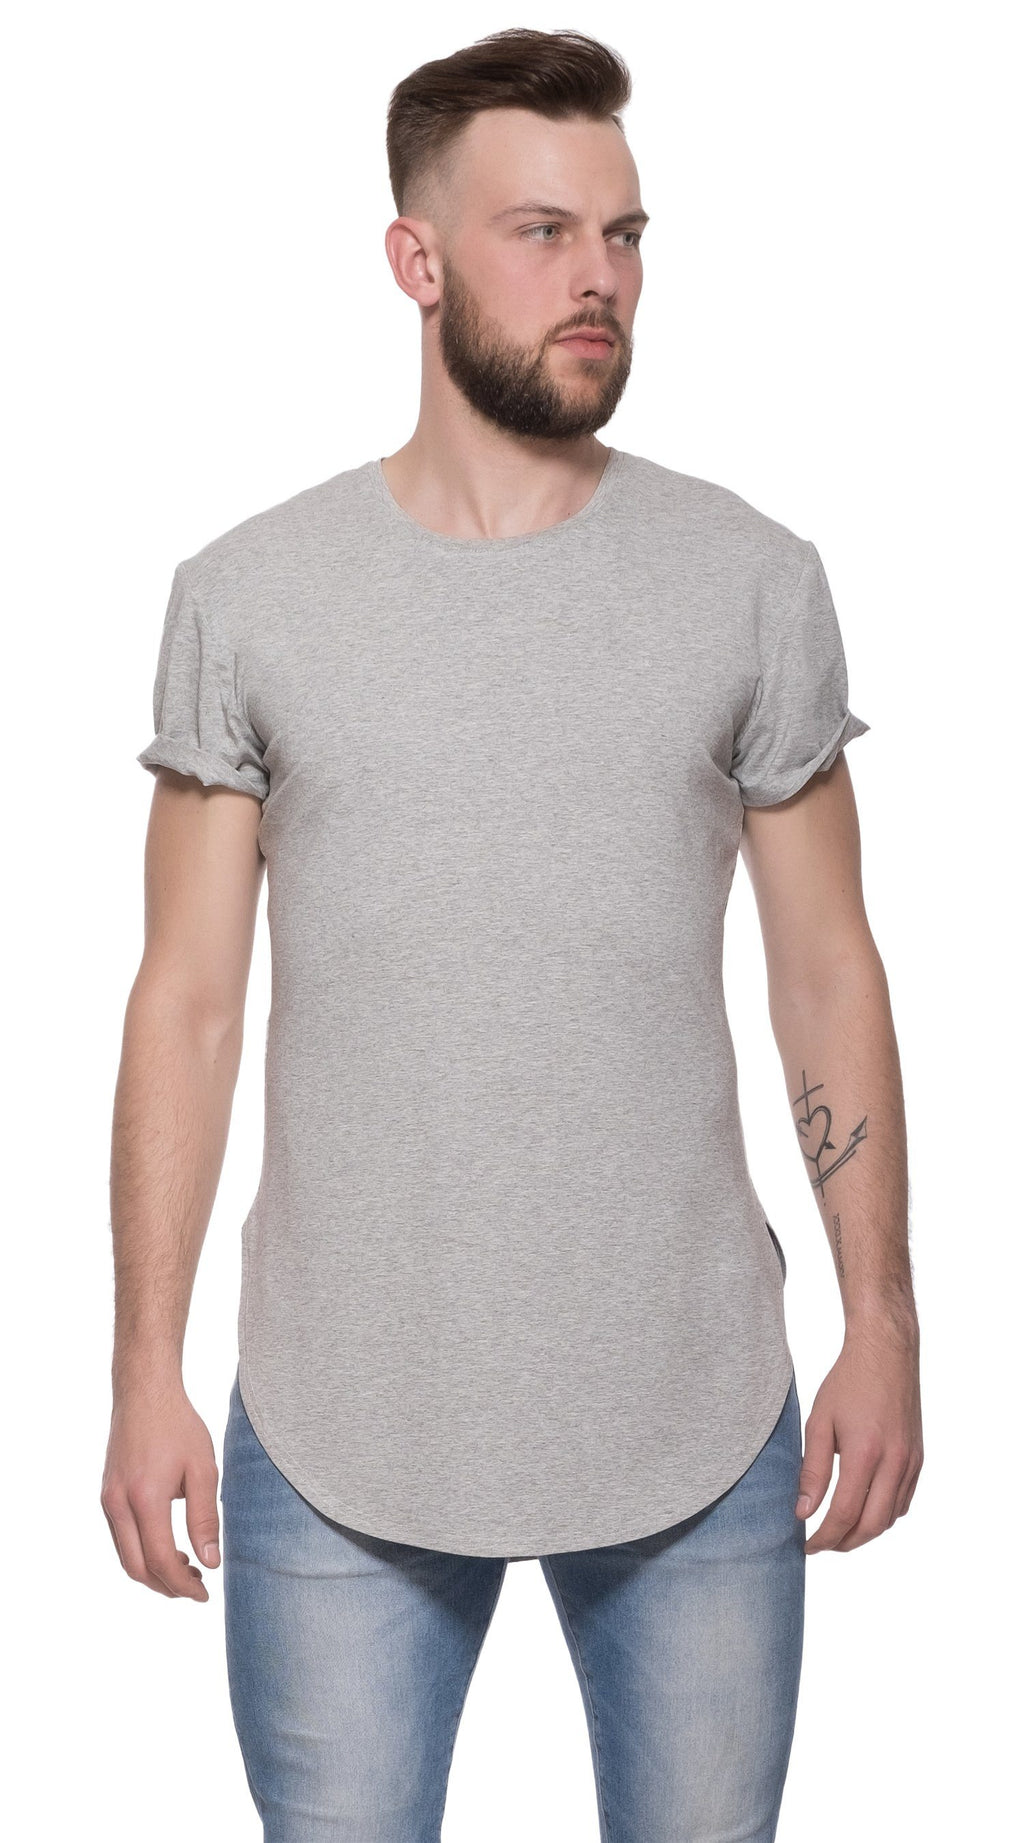 TheG Man Viscose Basic 1/2 Long Tee // grey